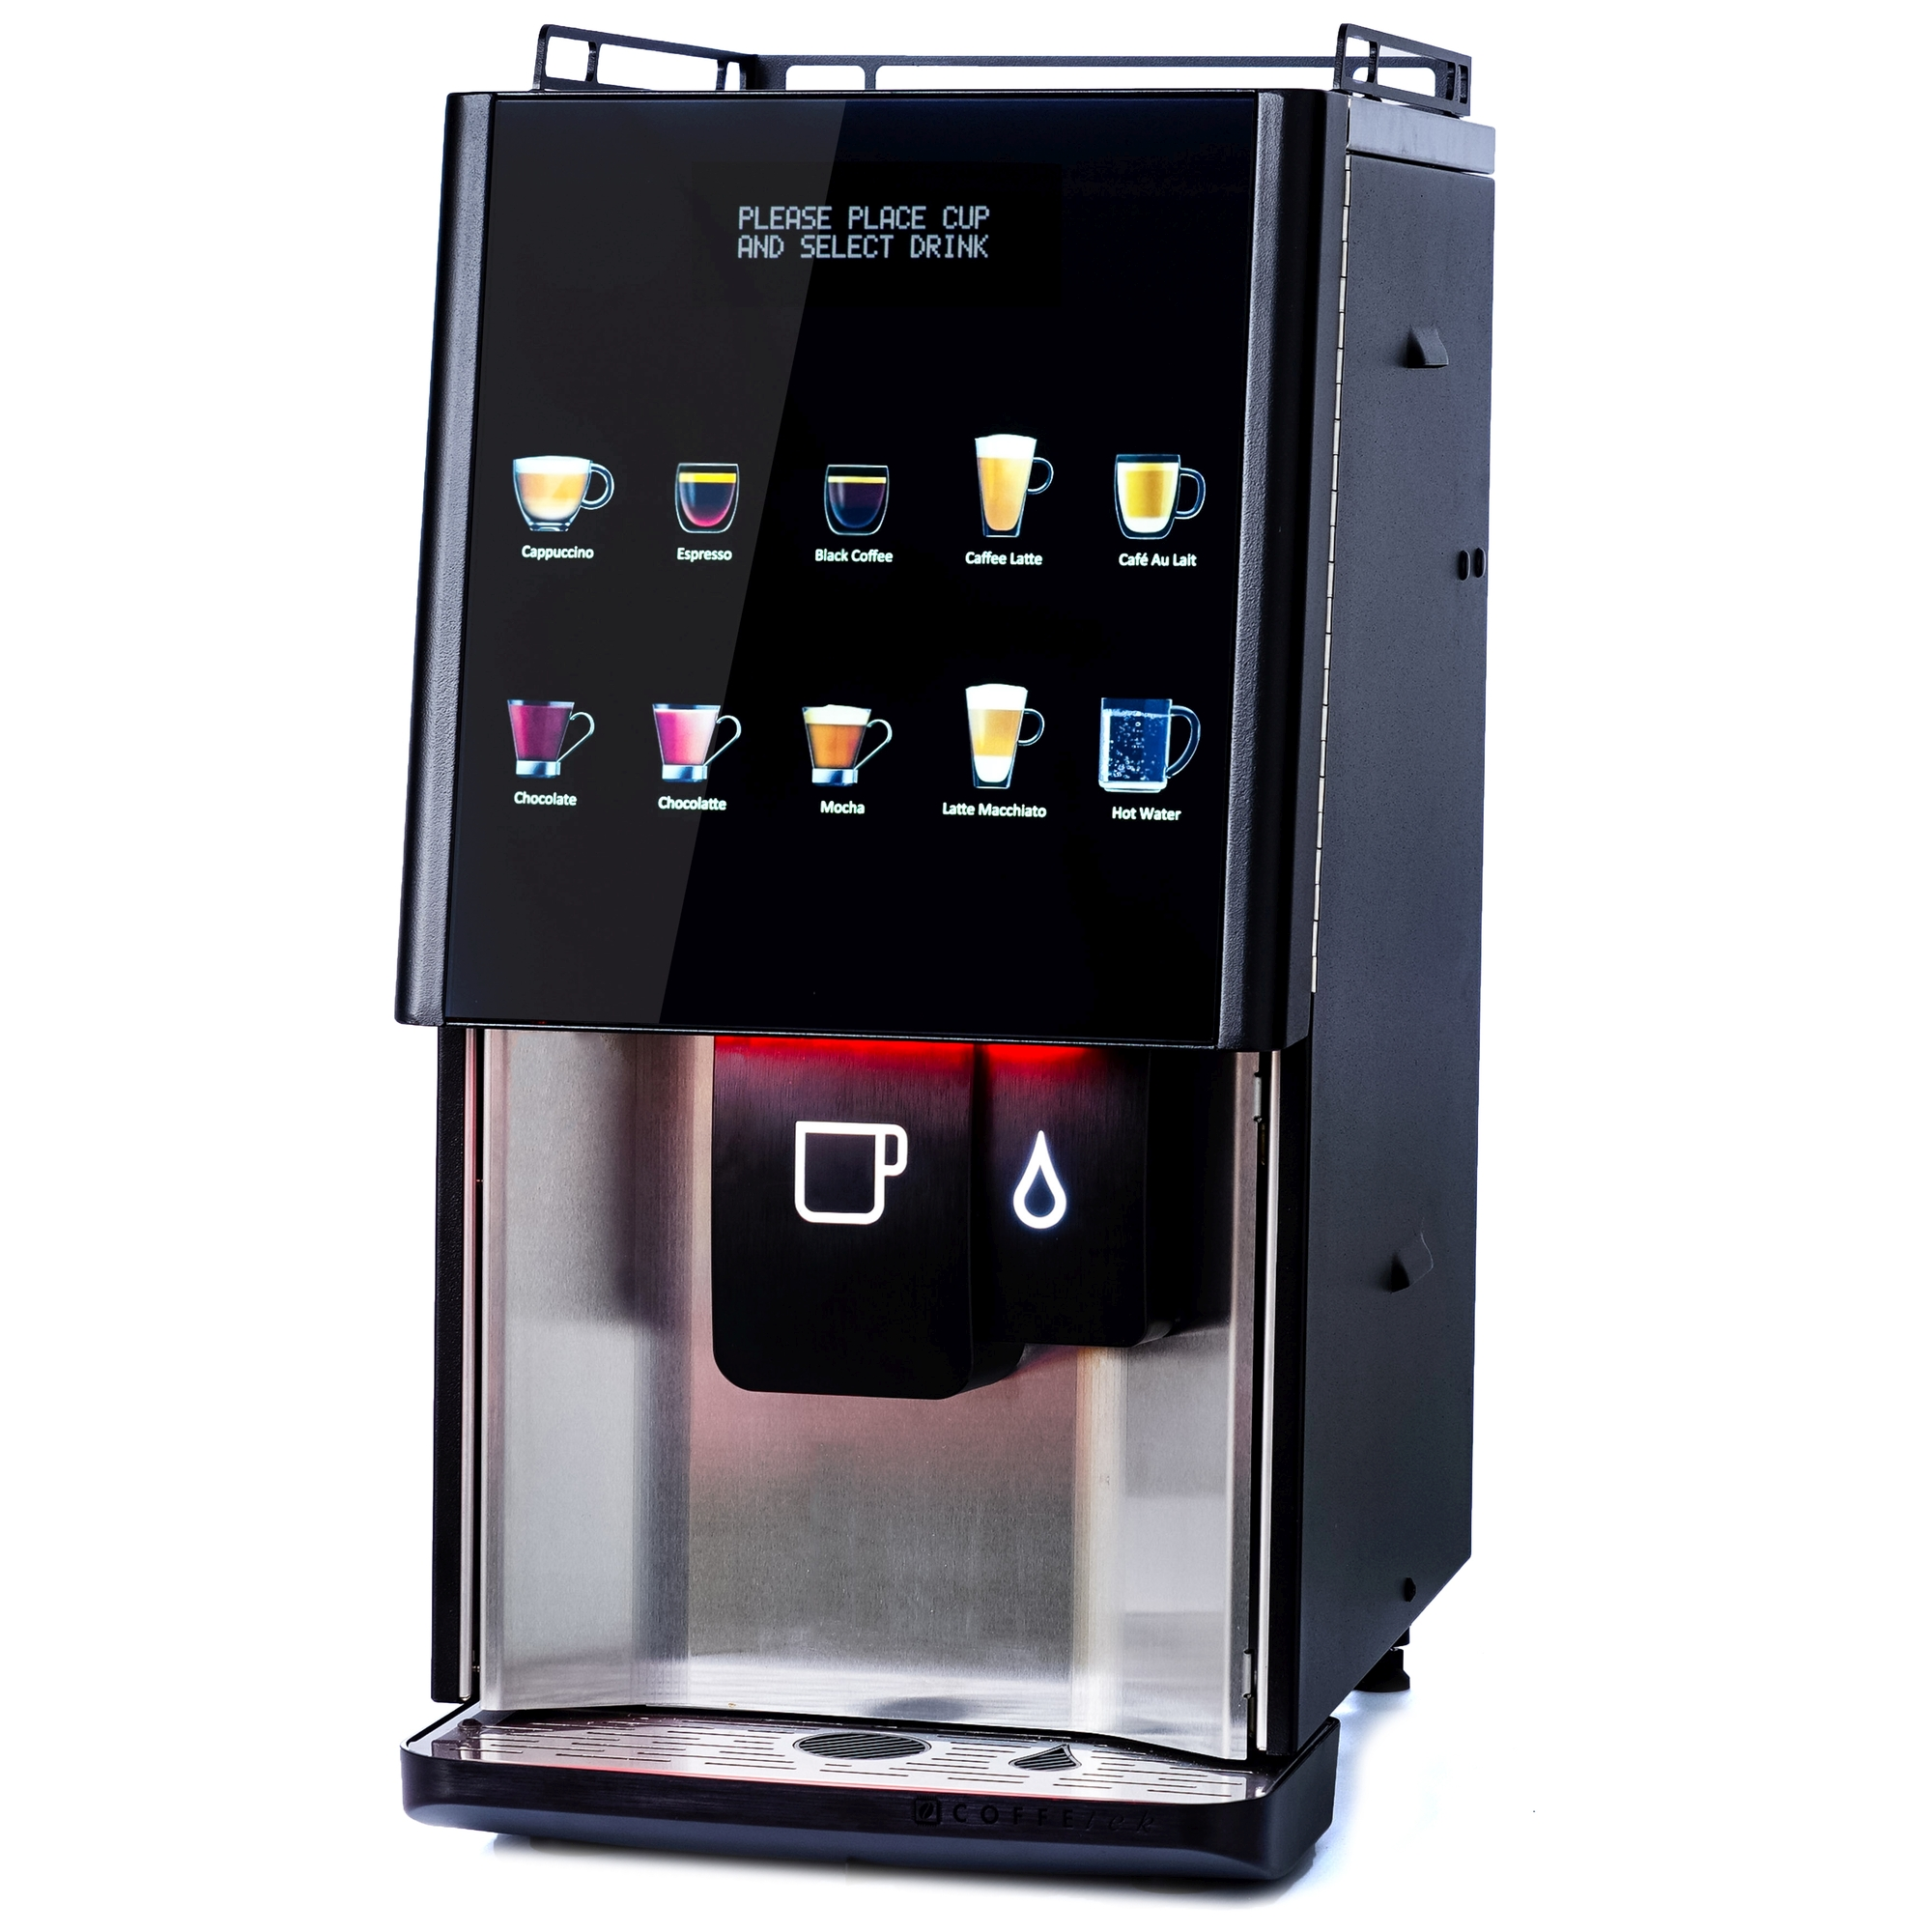 Vitro S2 Coffee Machine